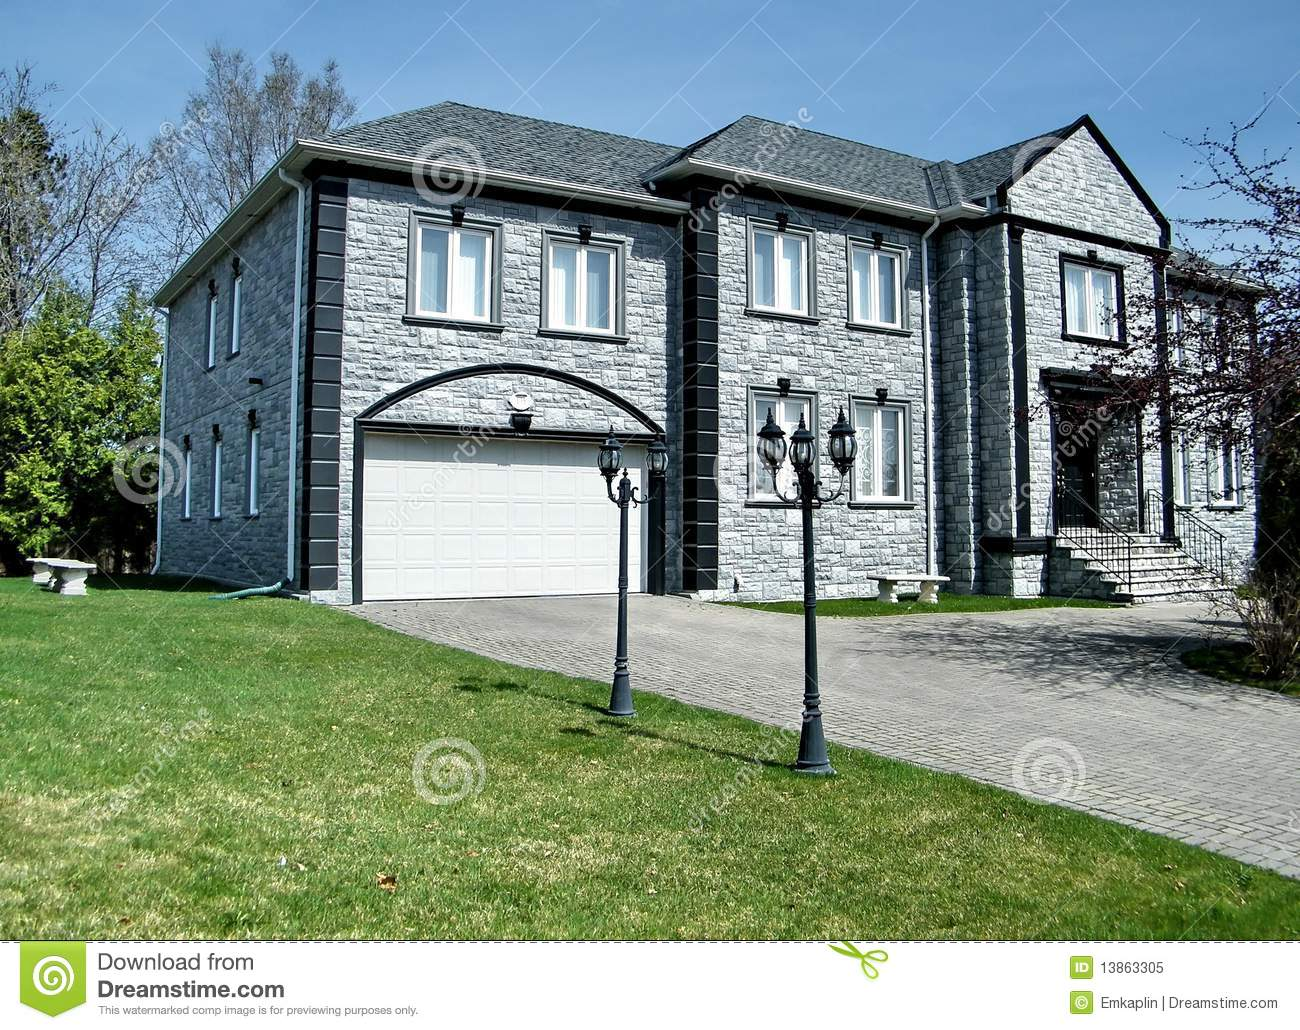 Thornhill very nice grey house 2010 royalty free stock for Very nice house